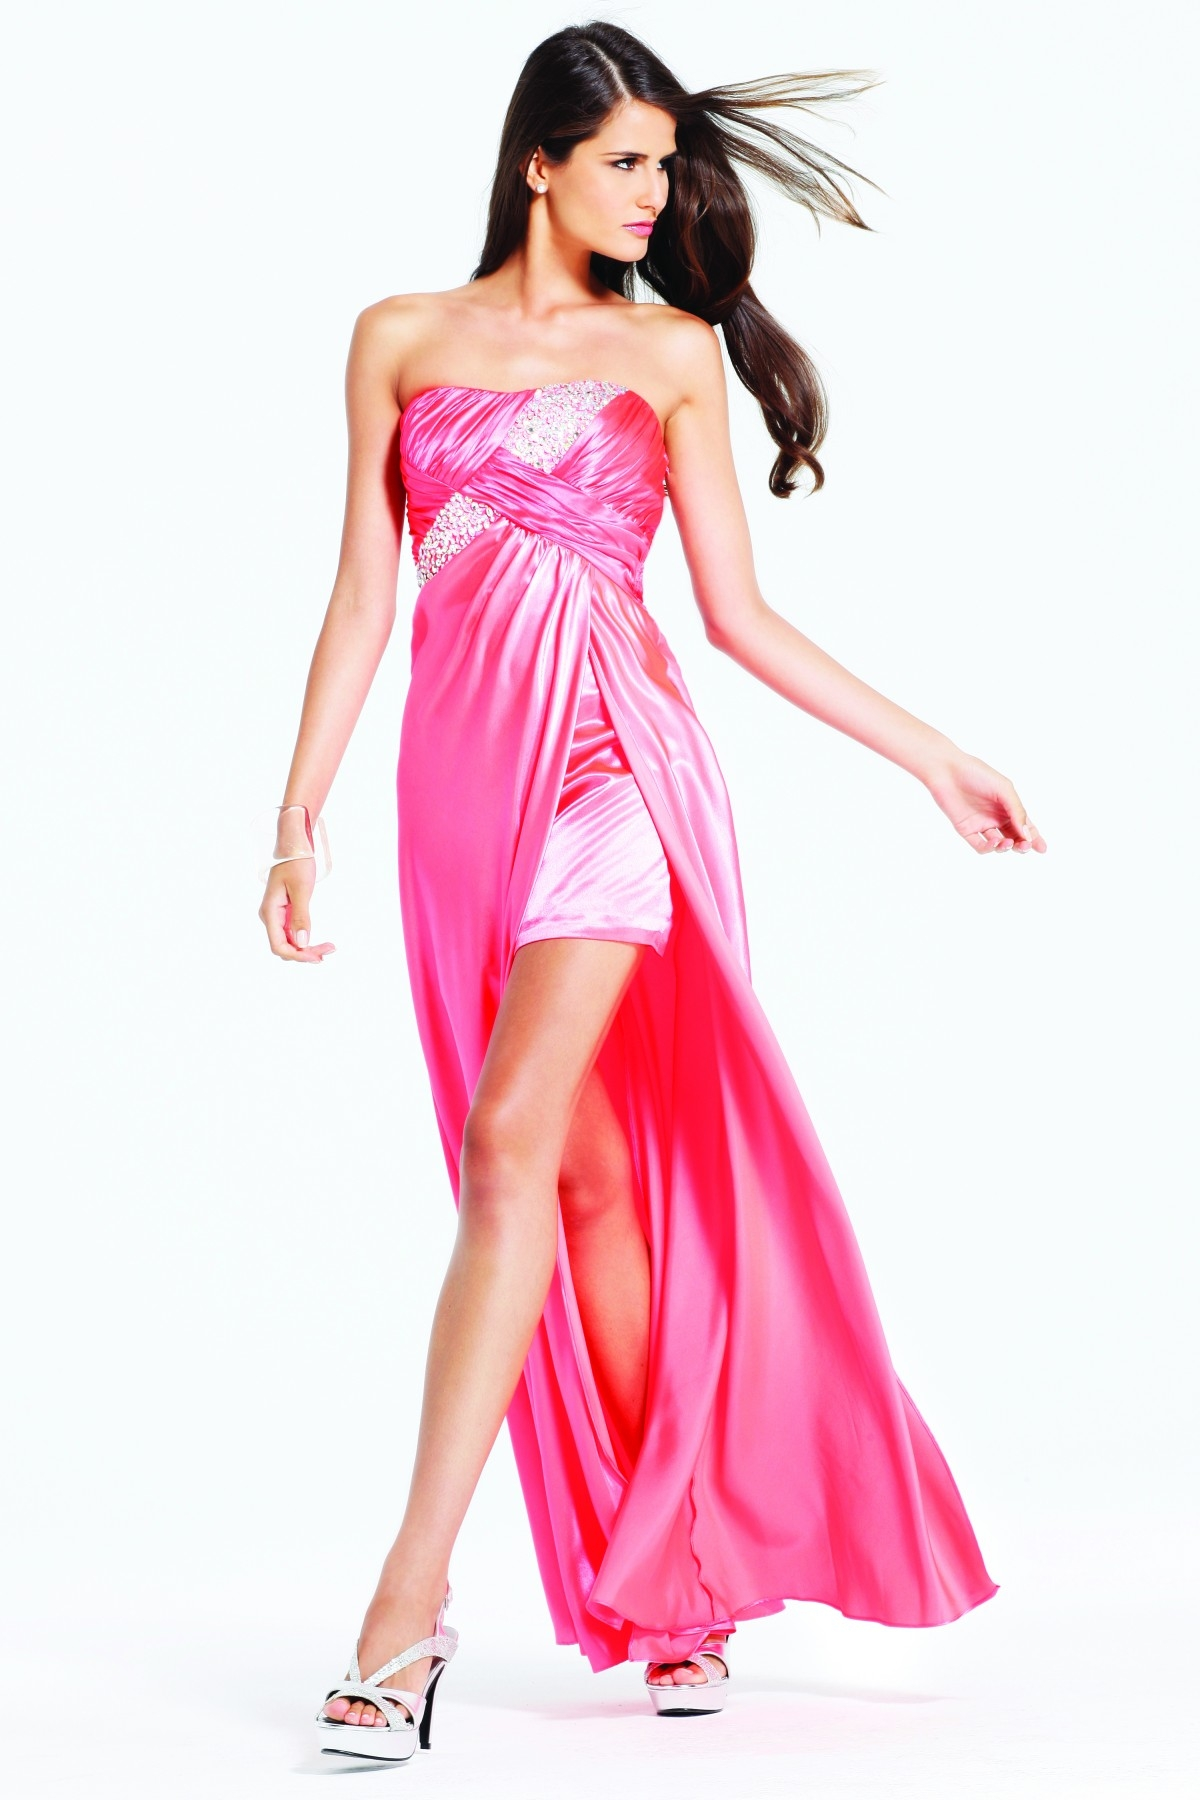 Elaborate Seuined Hot Pink High Low Strapless Column Sexy Dresses